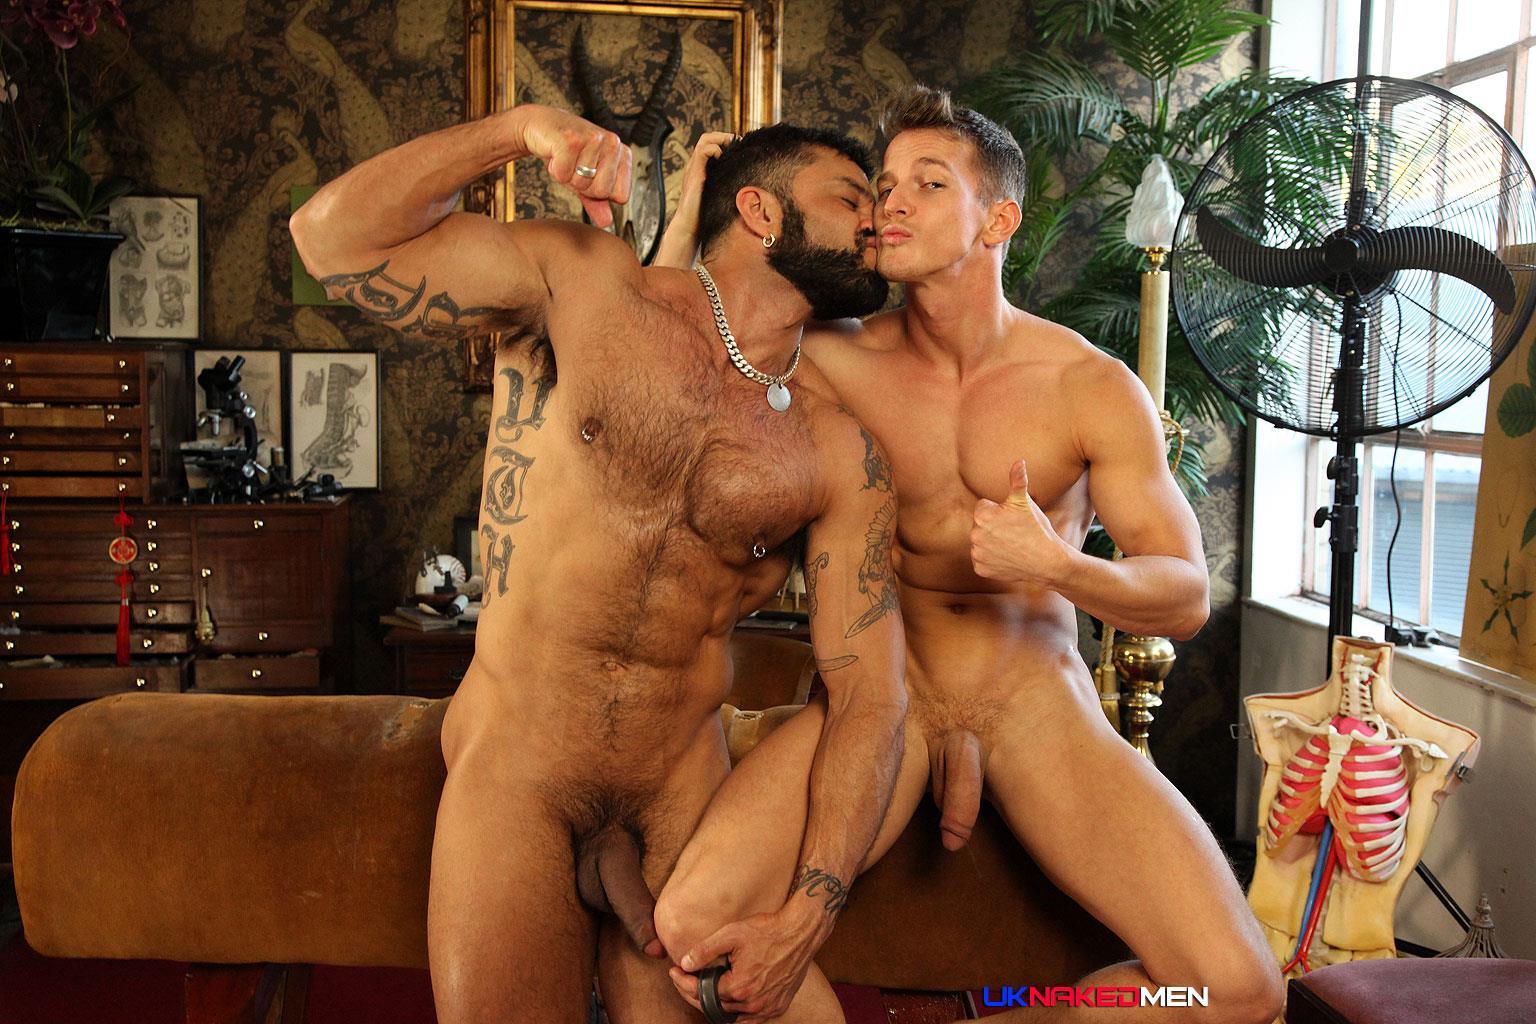 UK-Naked-Men-Rogan-Richards-Darius-Ferdynand-Huge-Uncut-Cocks-Fucking-Amateur-Gay-Porn-27 Hairy Muscle Arab Stud With A Big Uncut Cock Fucks A Slim Muscle Ass